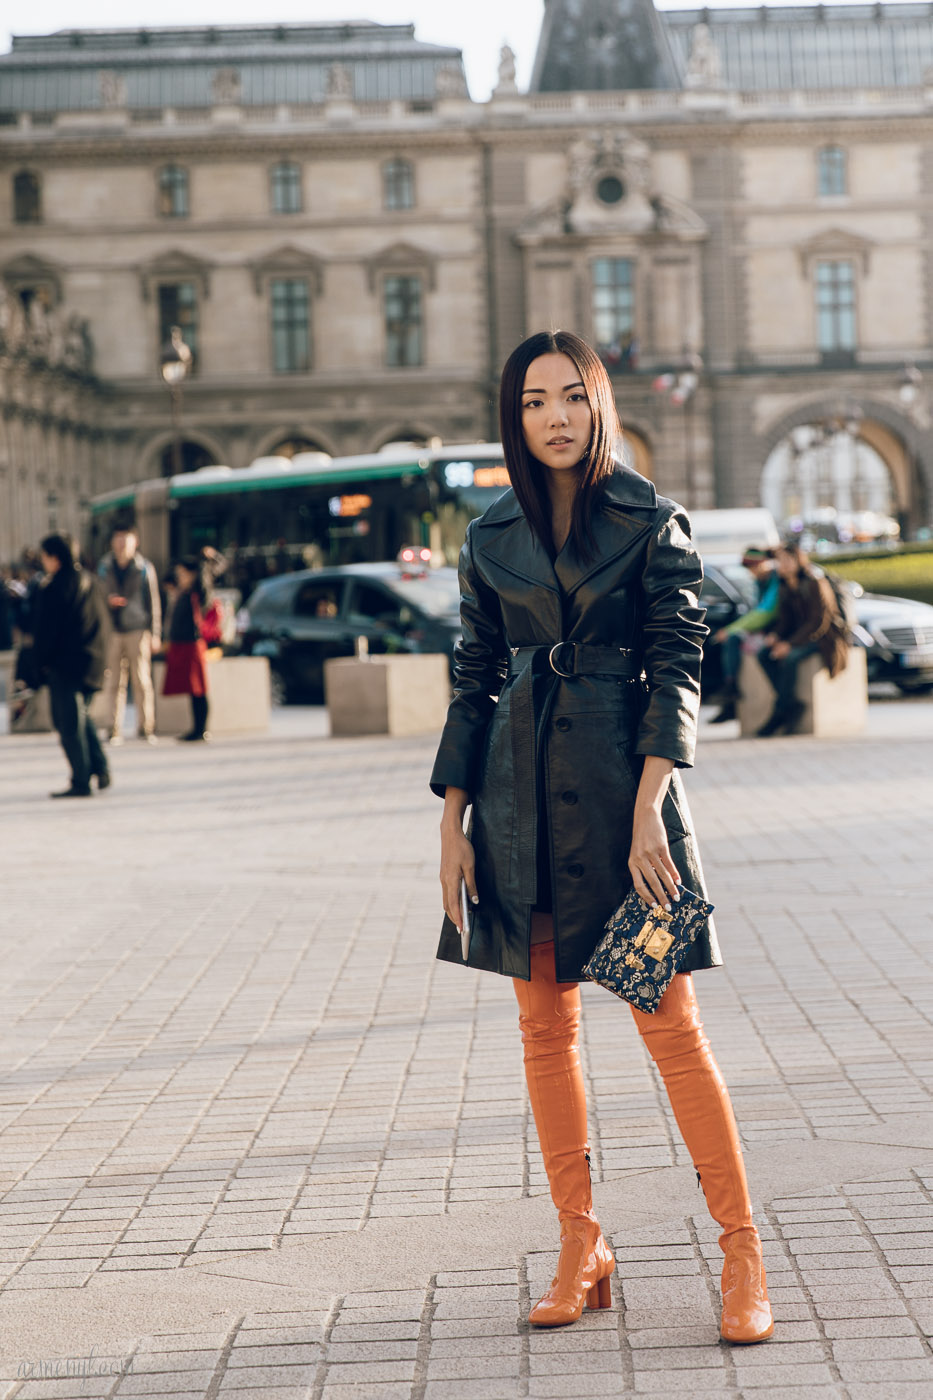 Street style looks at Louis Vuitton SS 2018 show in Paris by Armenyl